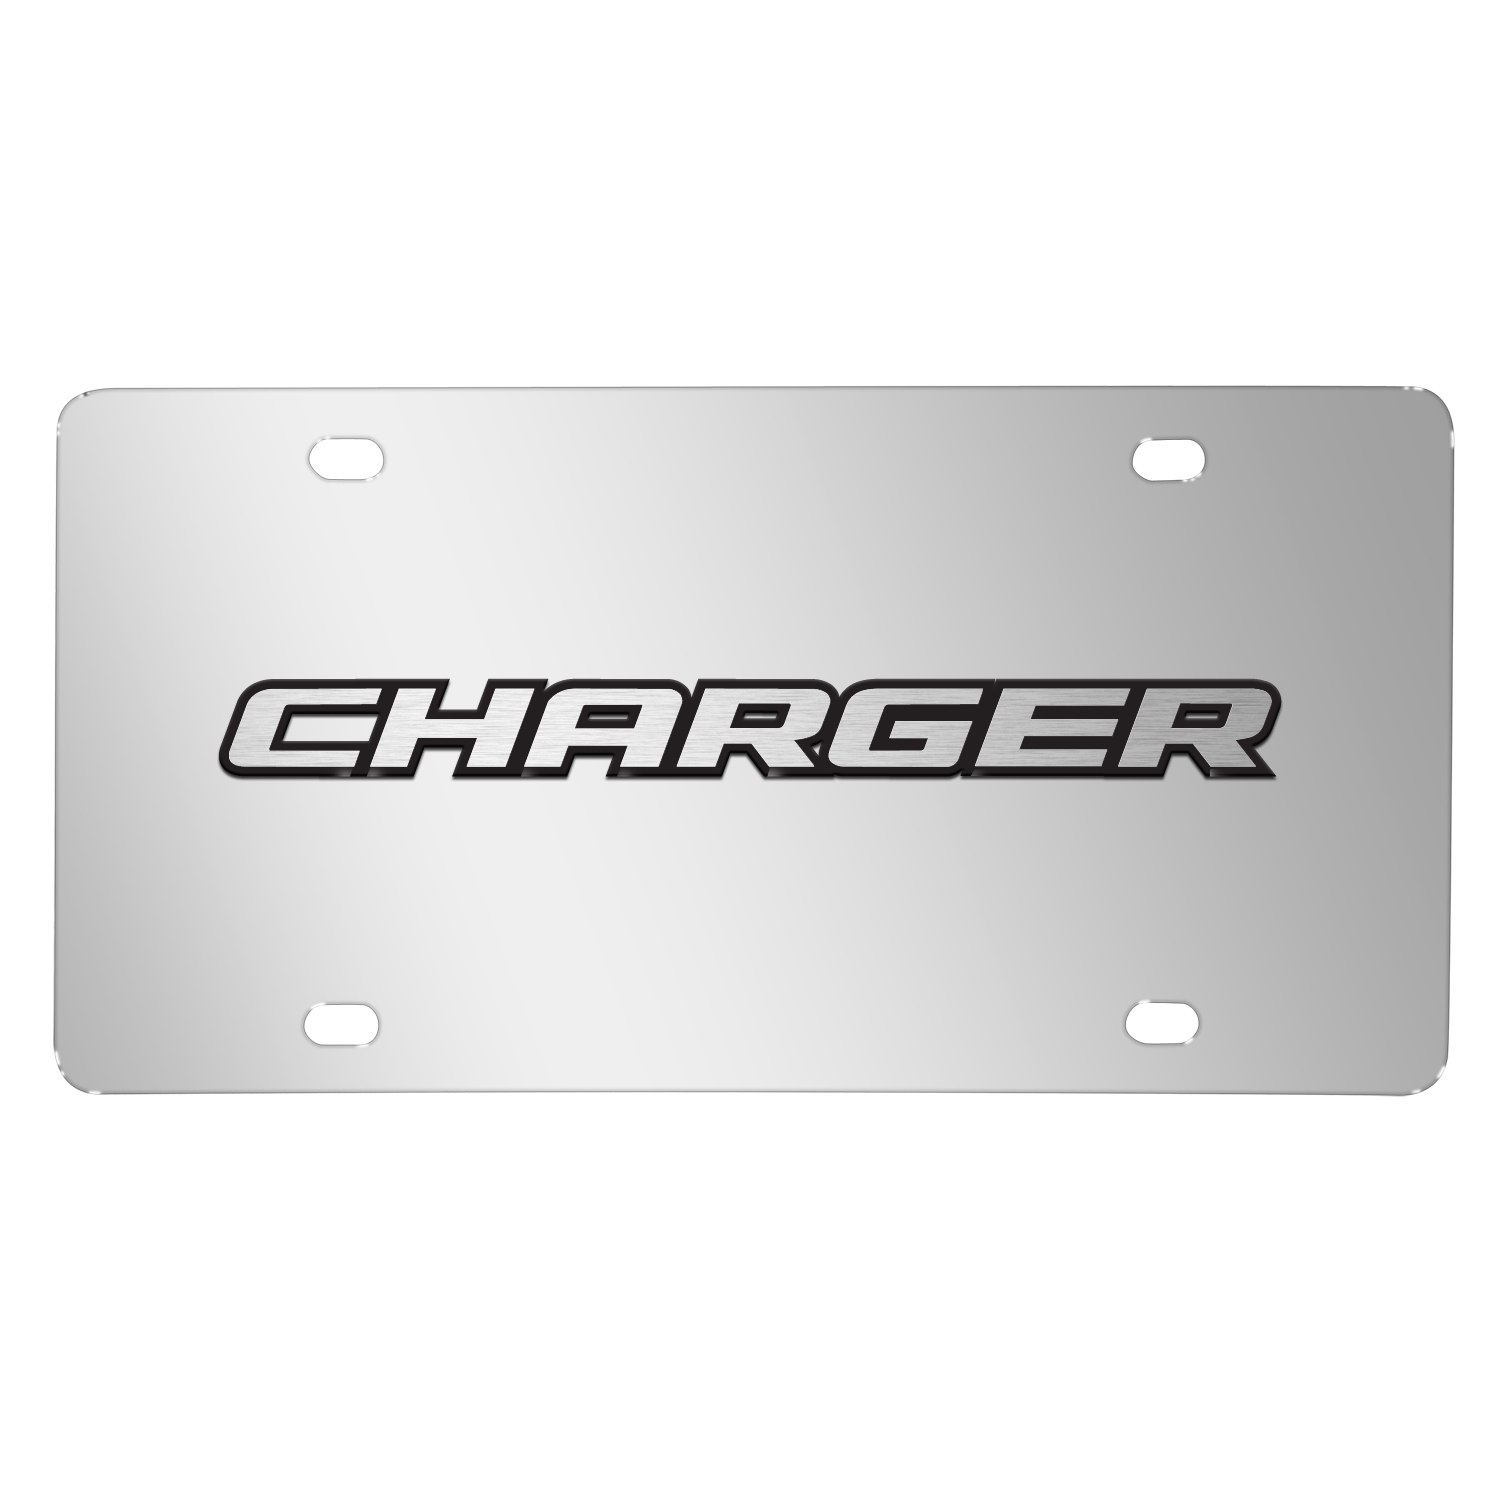 Dodge Charger 3D Logo on Chrome Stainless Steel License Plate